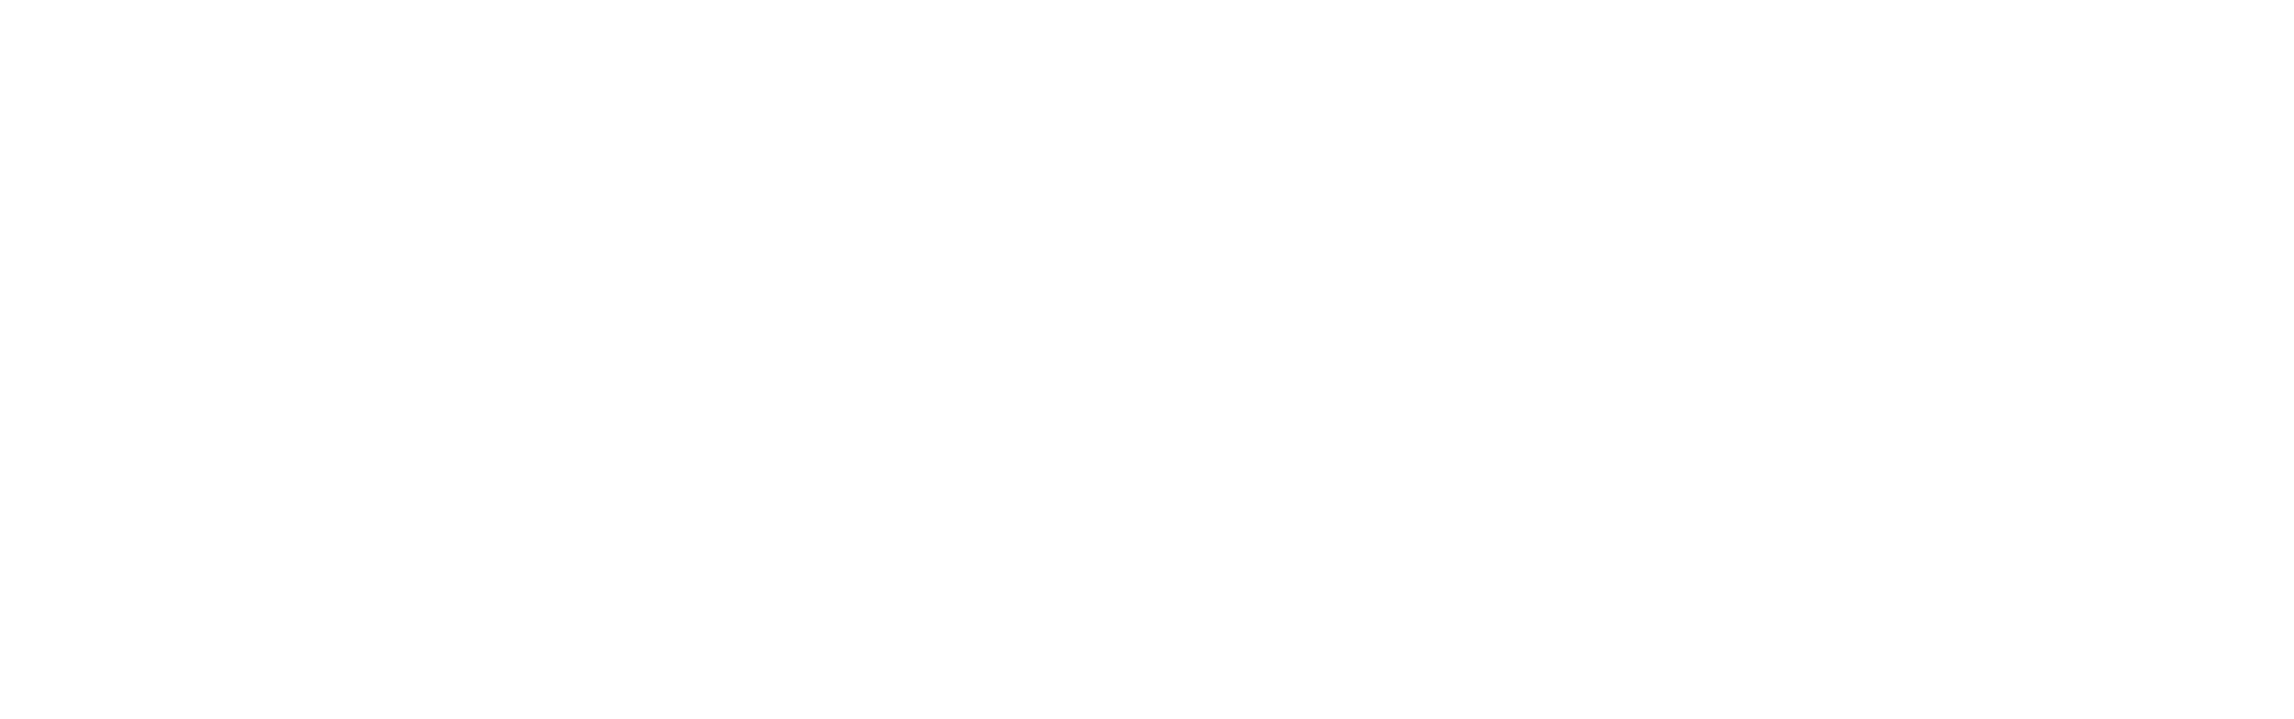 acts 29 vector white.png